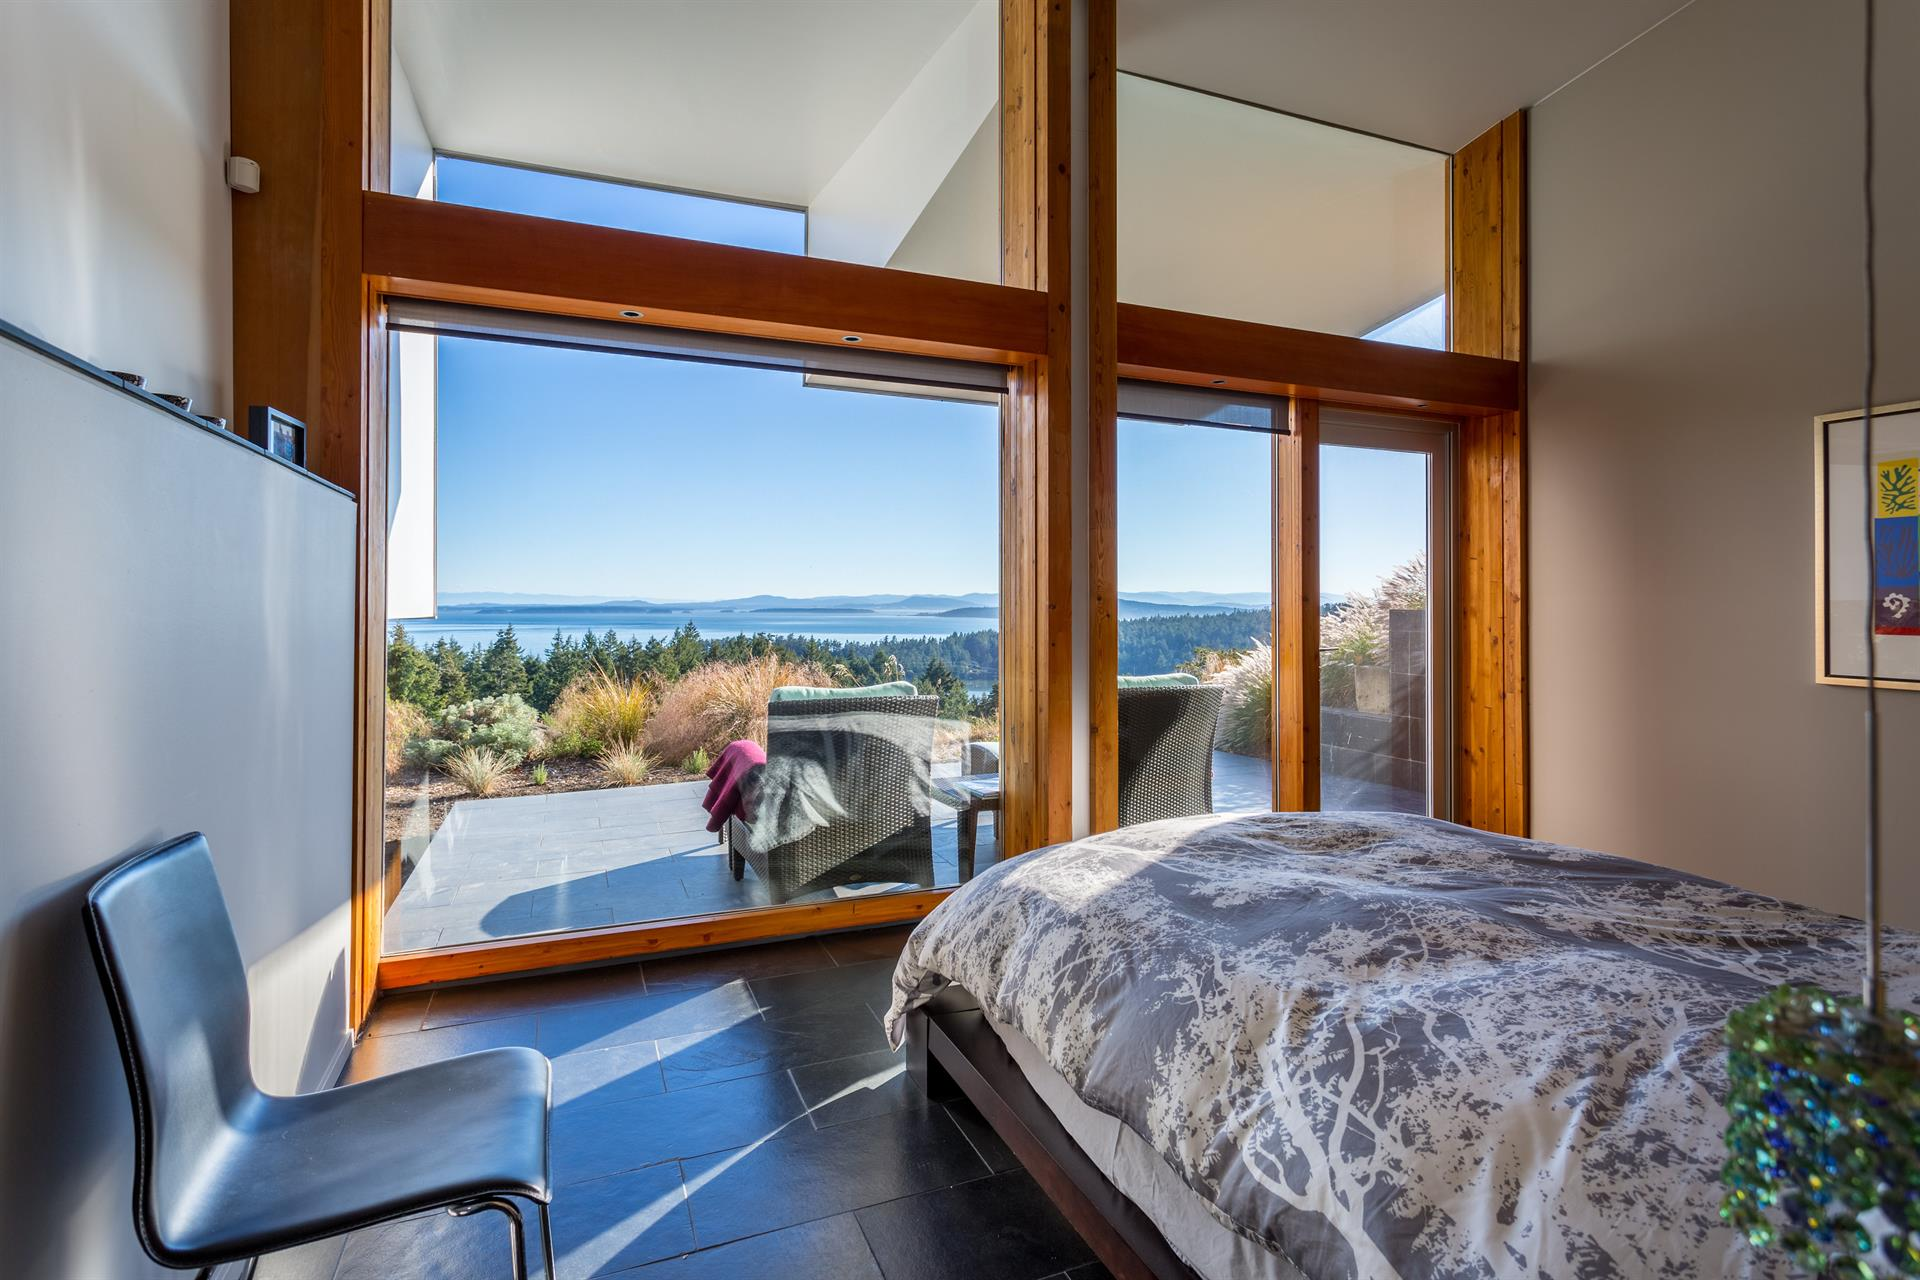 Additional photo for property listing at 9809 Spalding Rd Pender Island, British Columbia,Canada